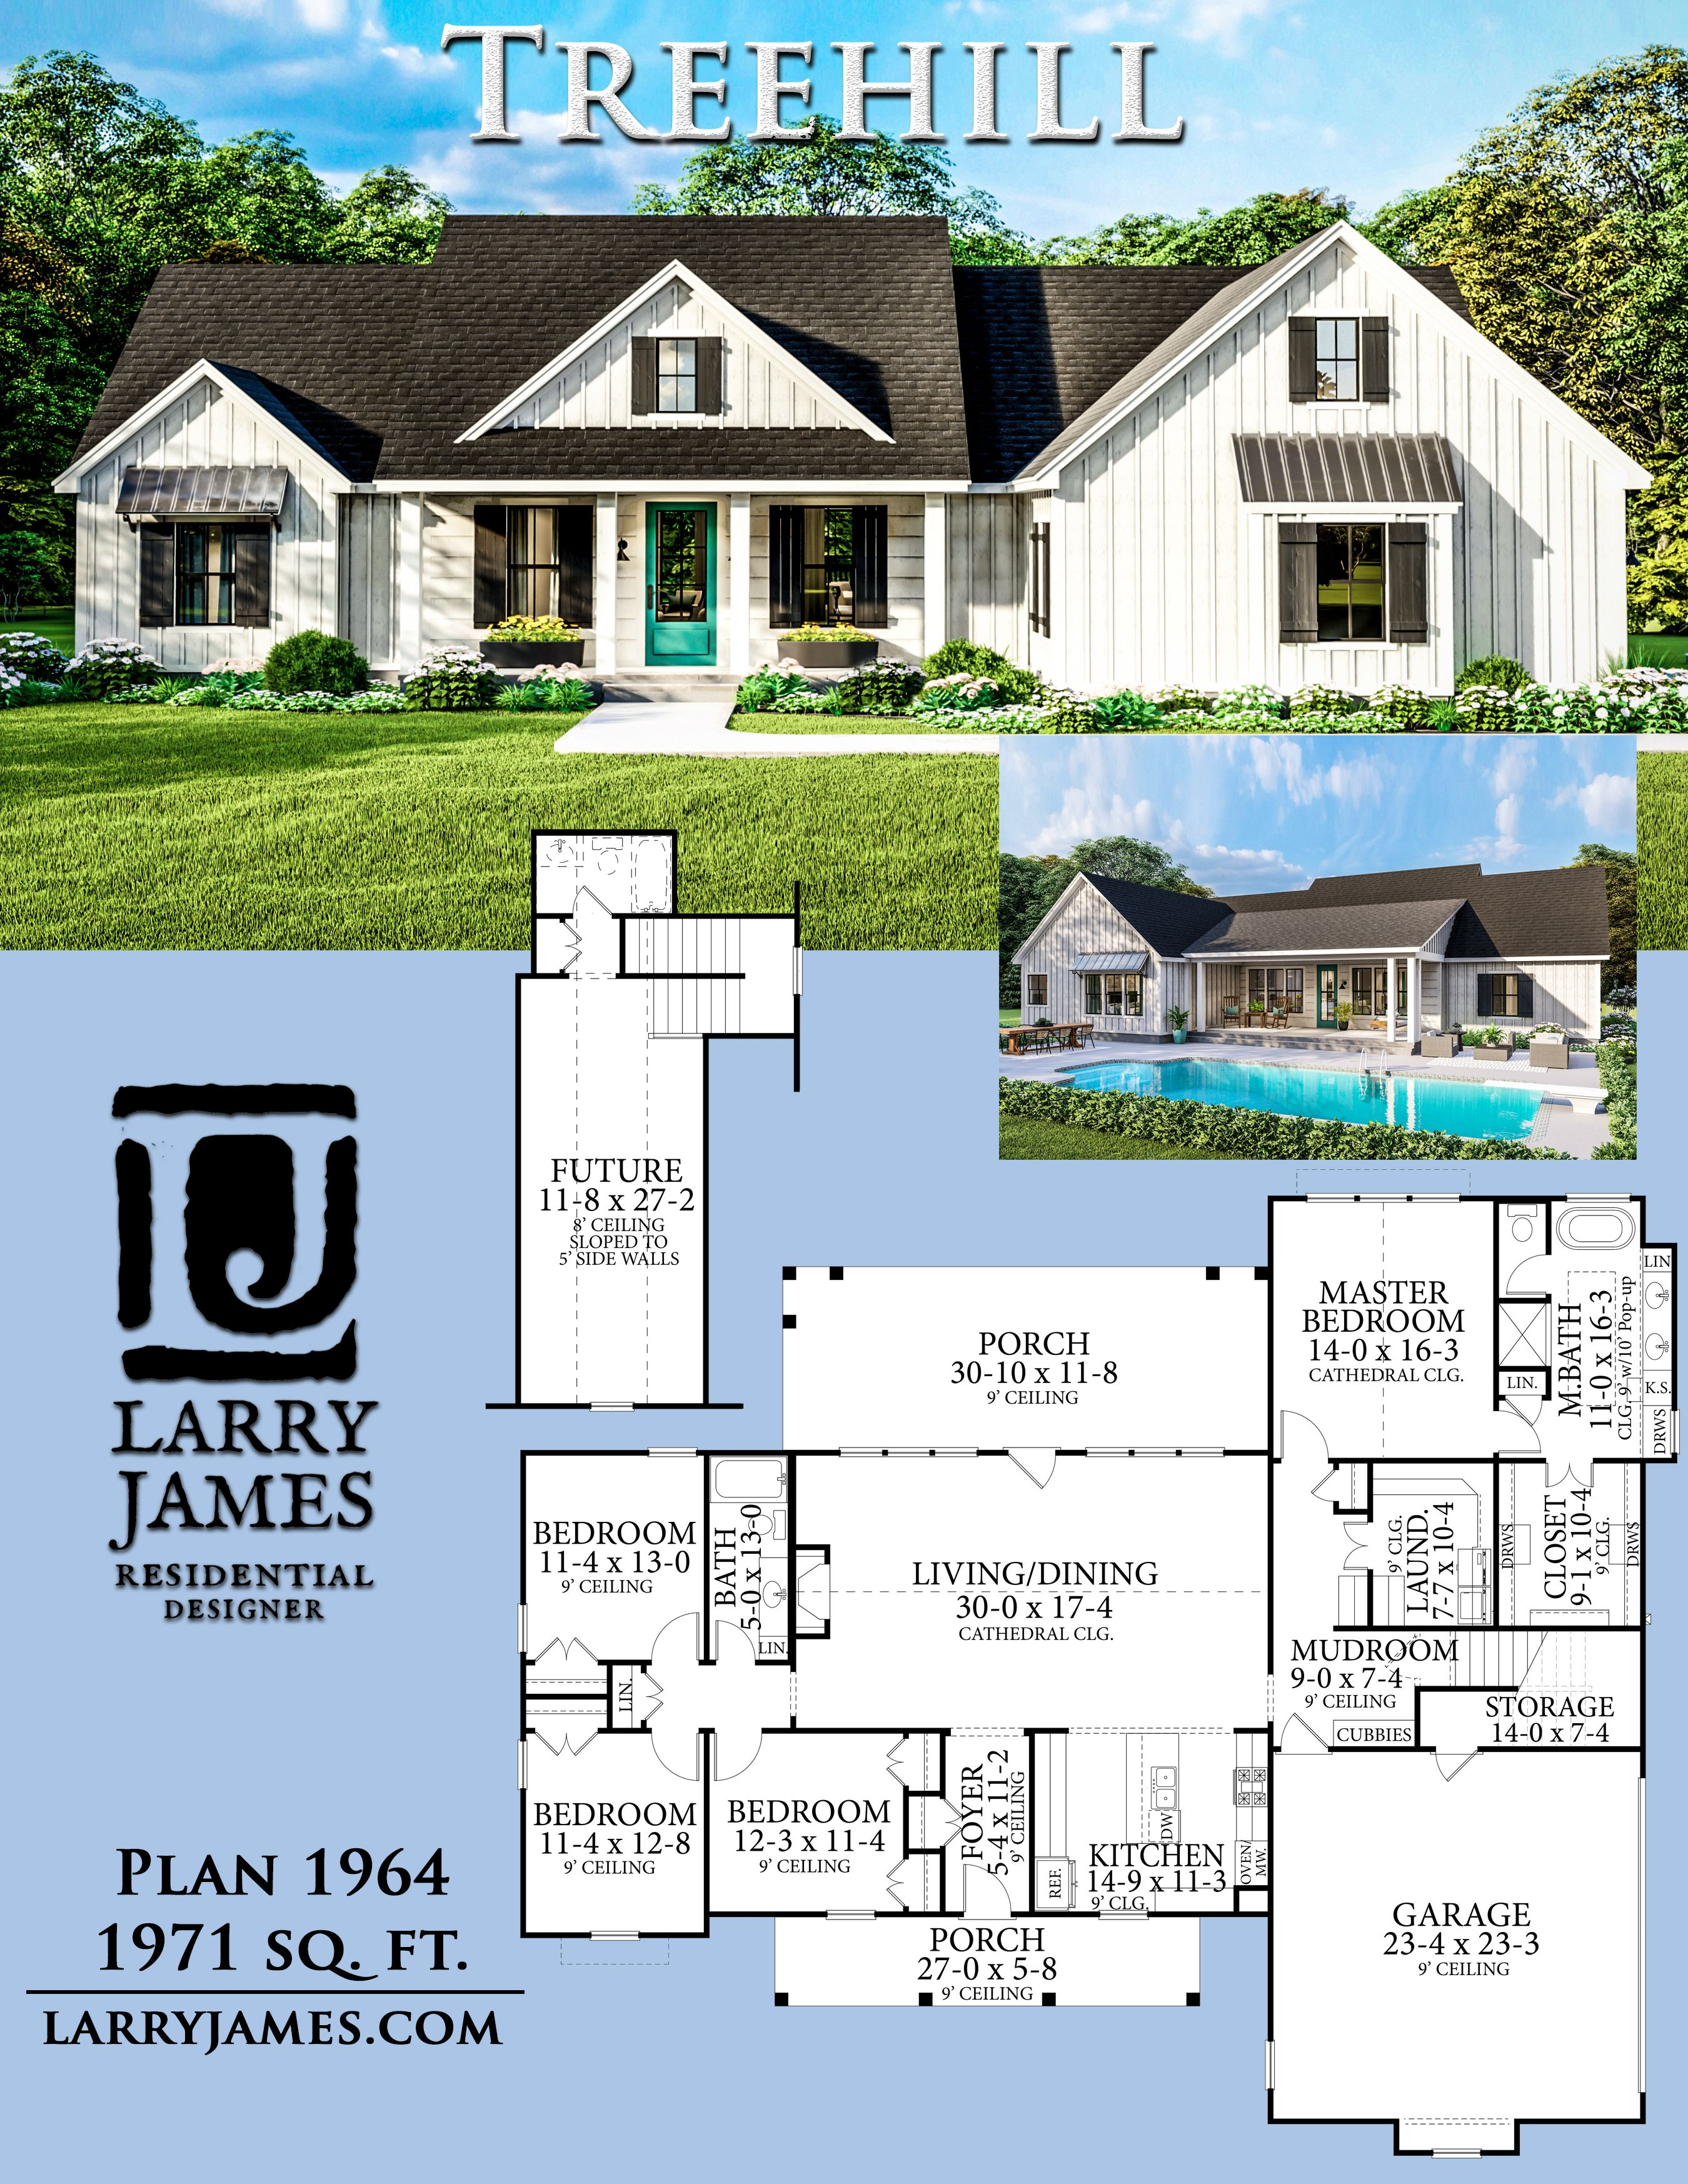 Treehill Plan 1964 Farmhouse Style House Plans Family House Plans Country House Plans